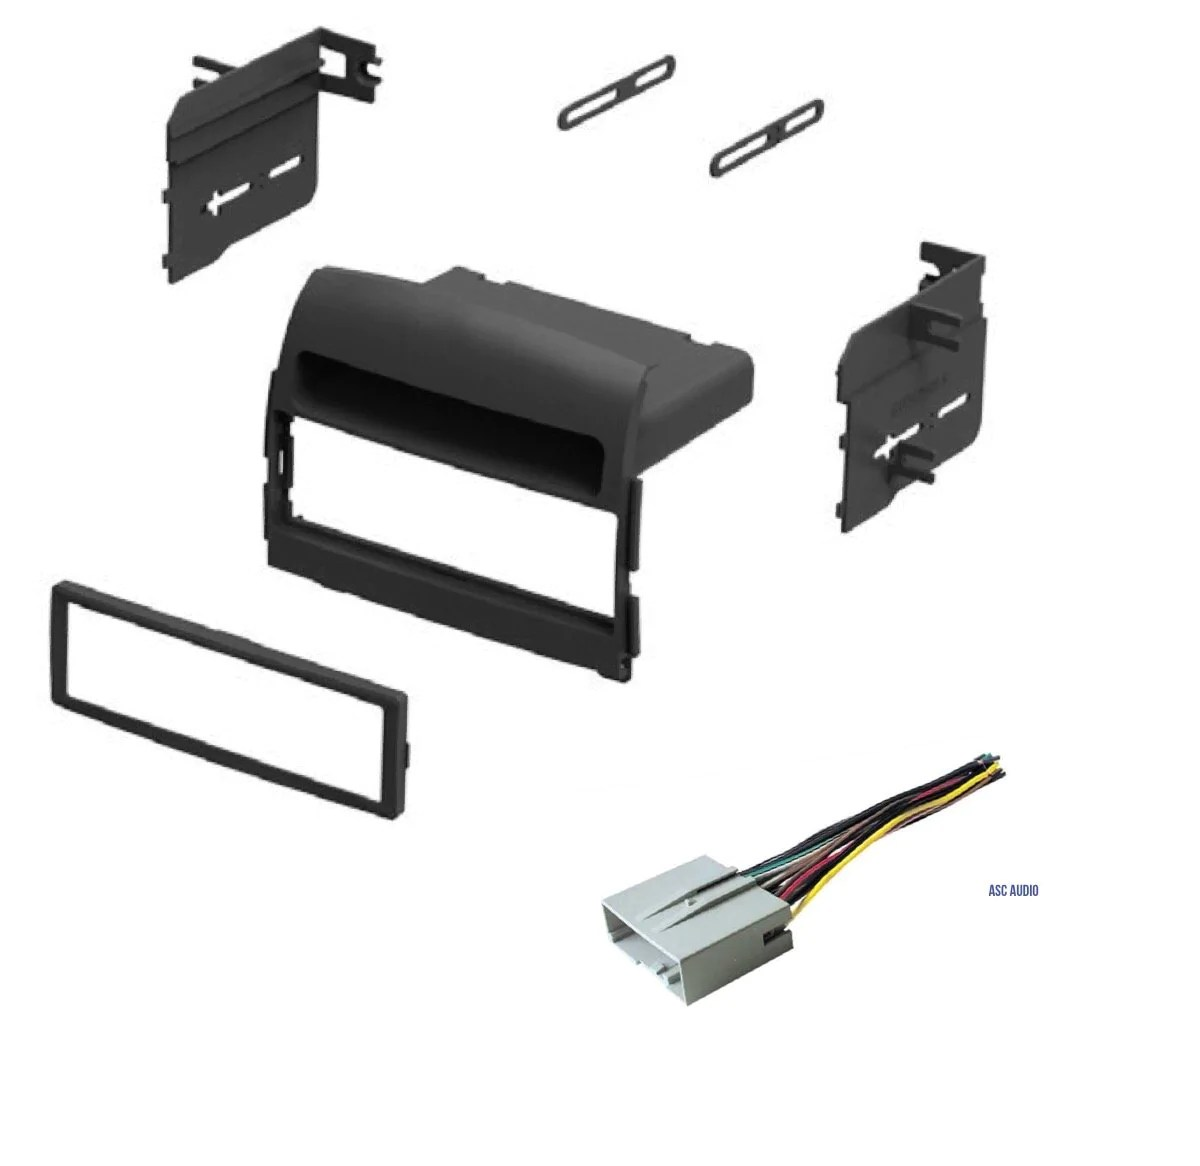 hight resolution of car stereo install dash kit and wire harness for installing an aftermarket single din radio for 2